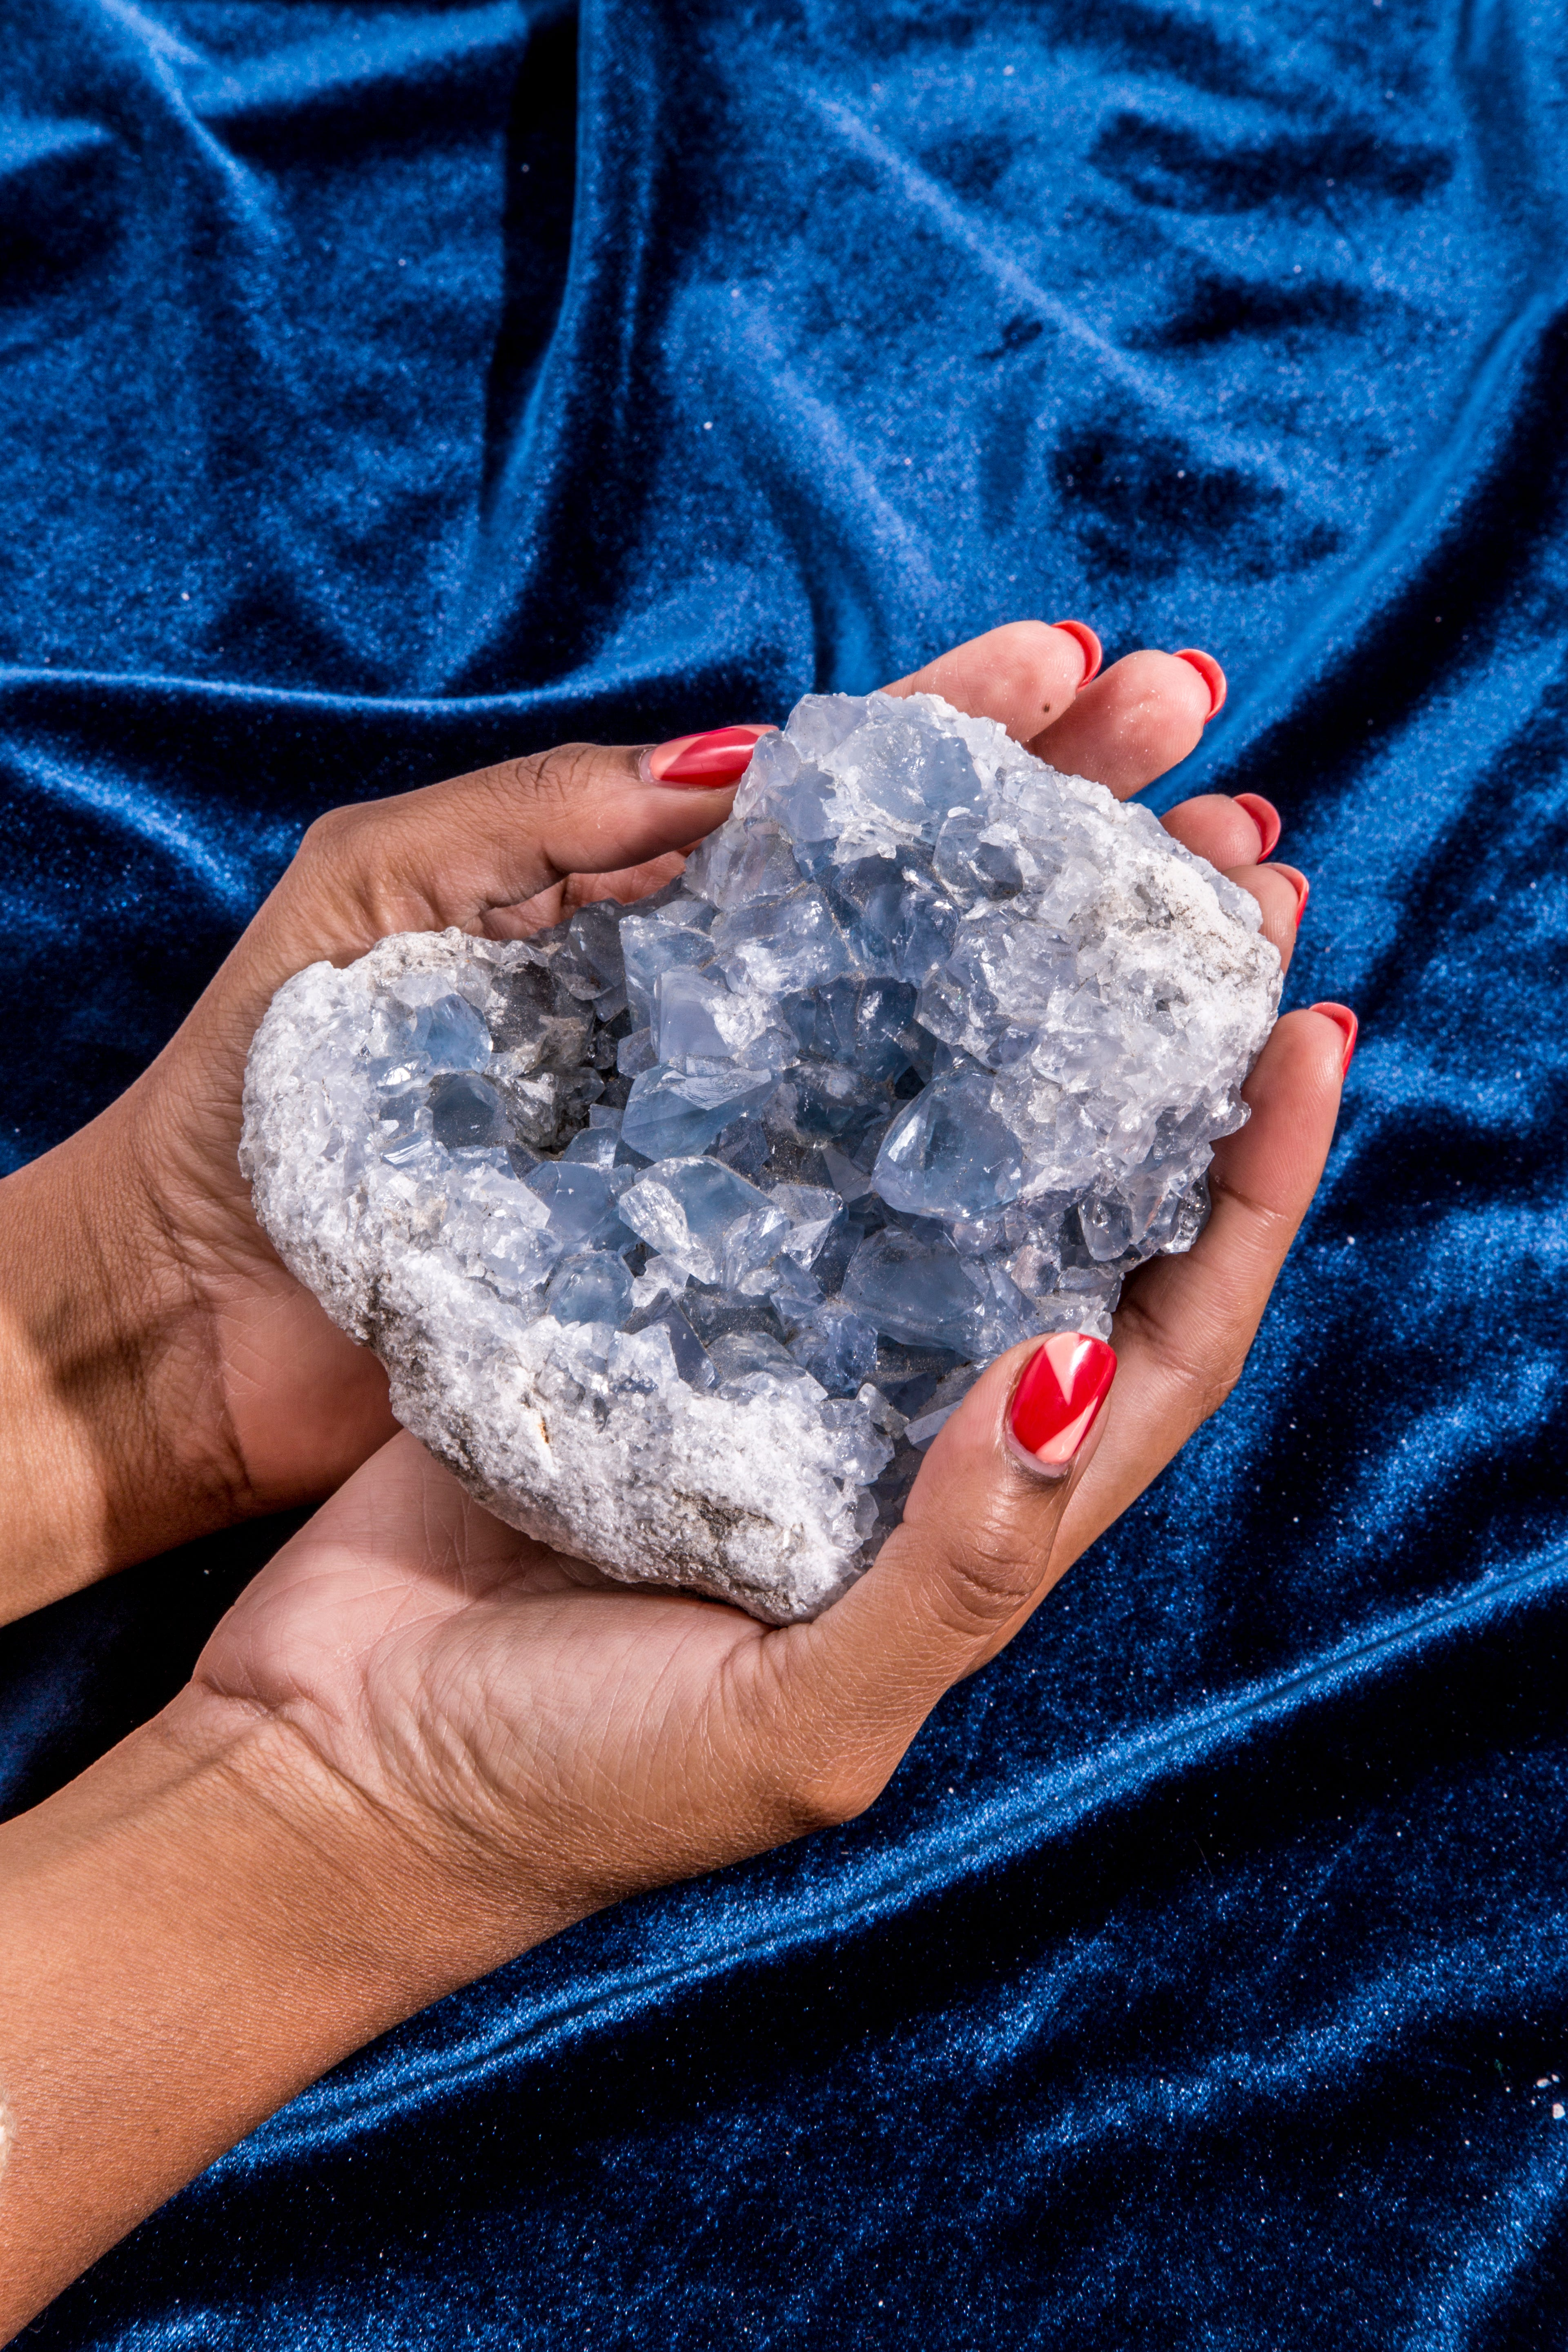 The Crystal You Need, According To Your Sign